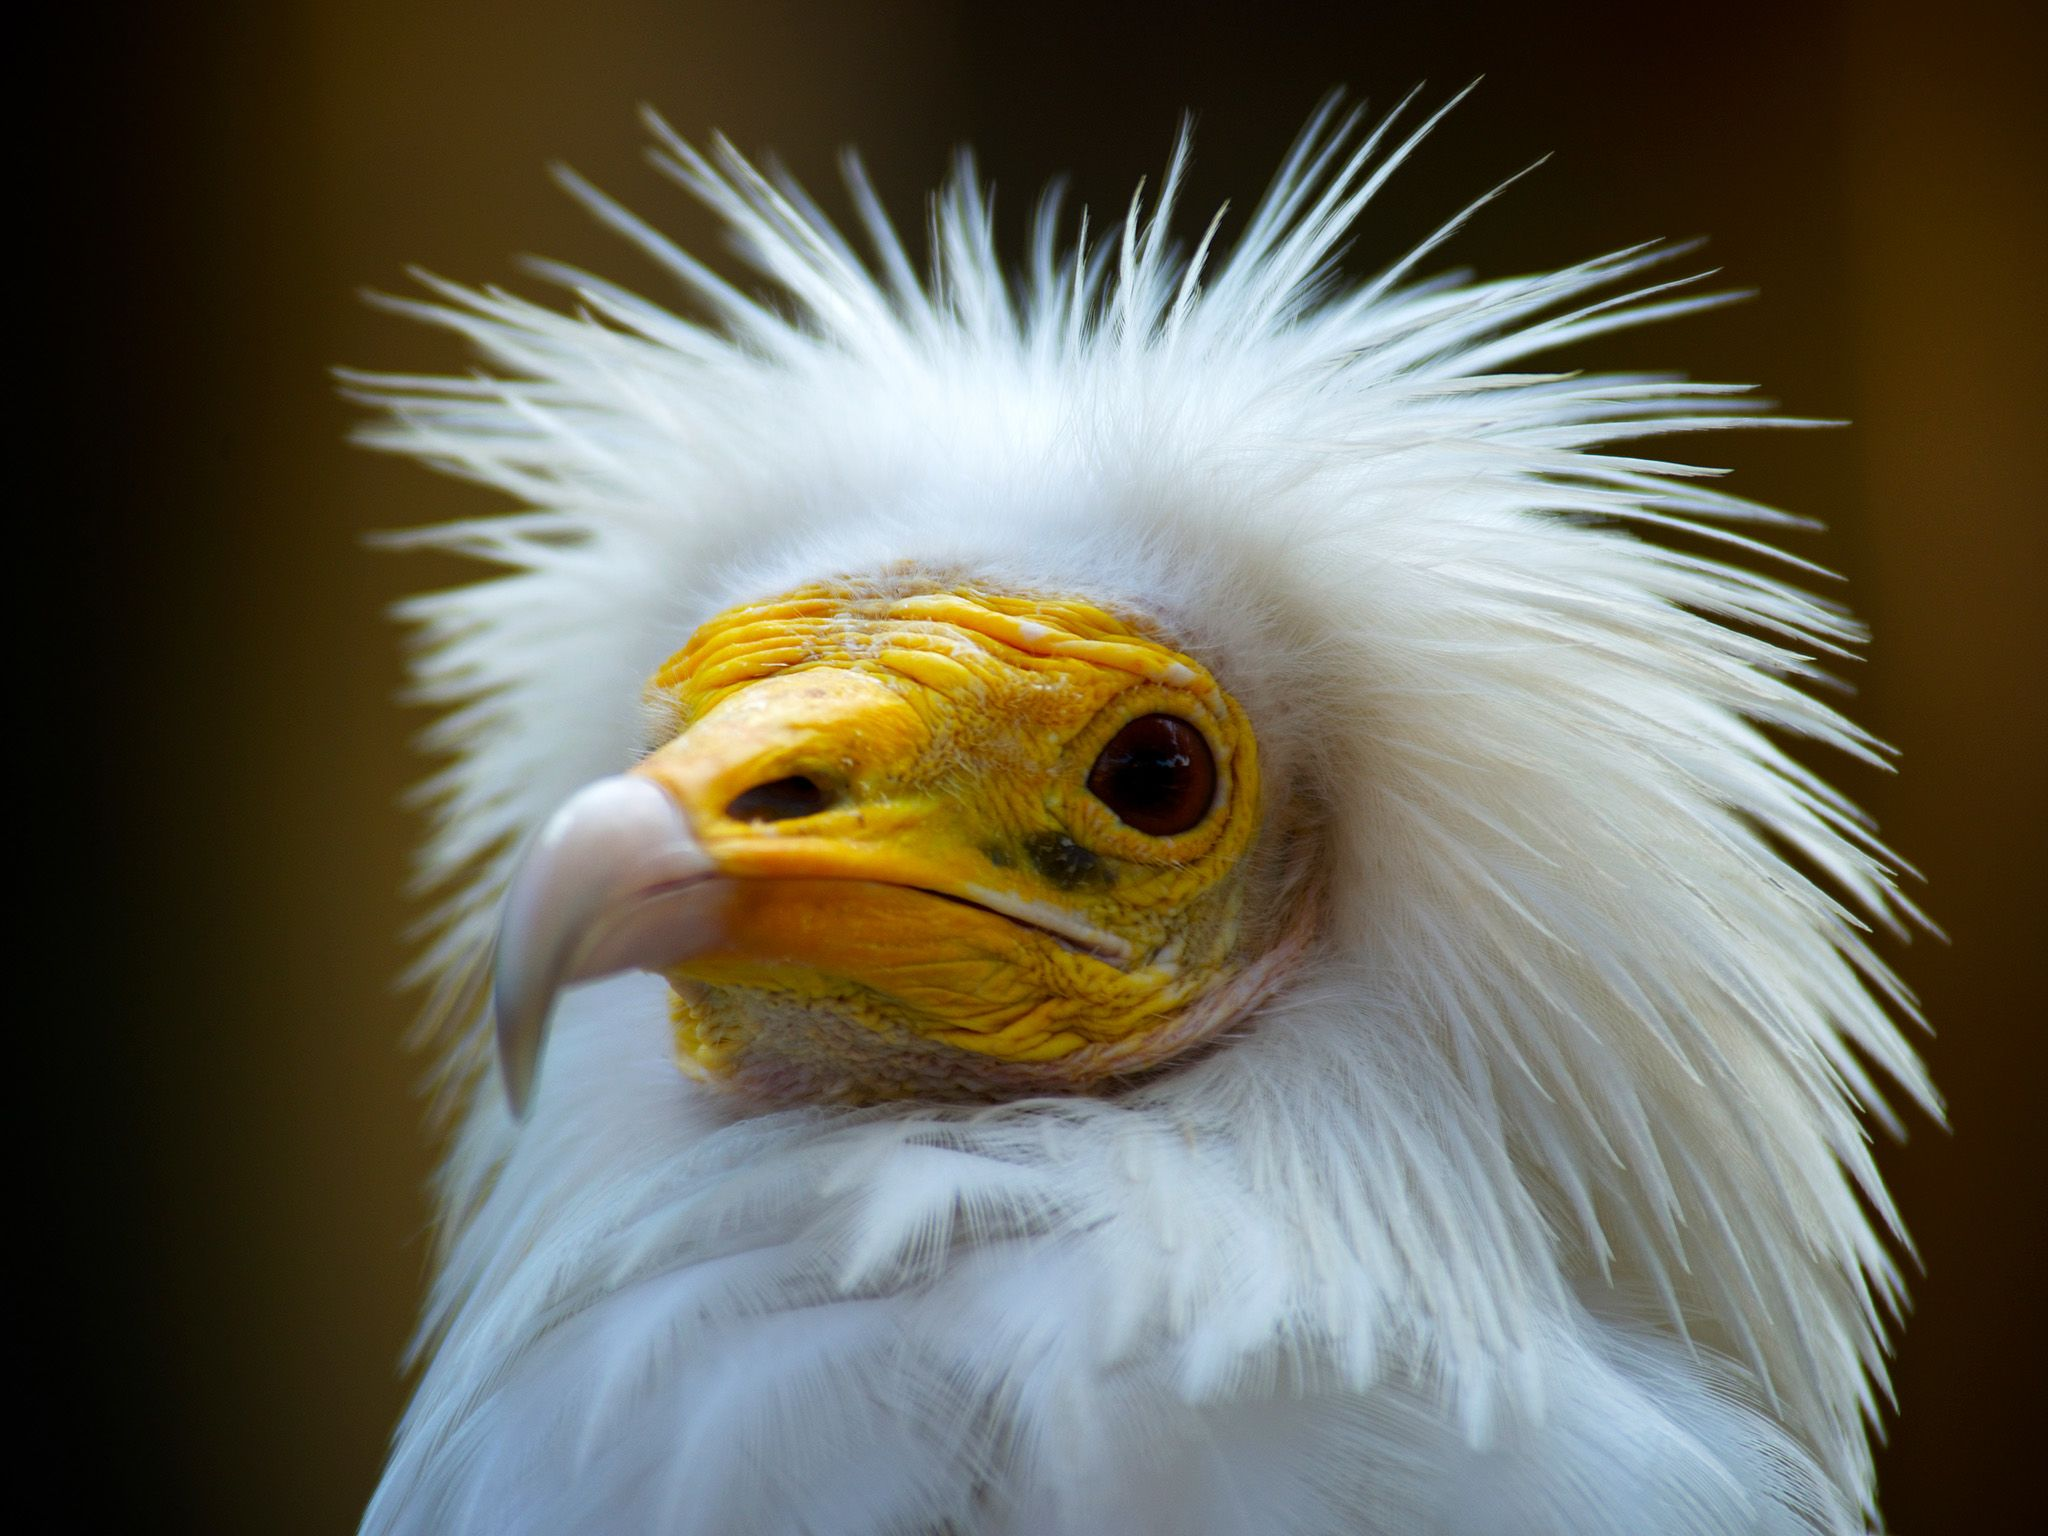 Bikaner, India: Egyptian vulture. A new look at humankind's relationship with the wildest... [Photo of the day - مارس 2015]